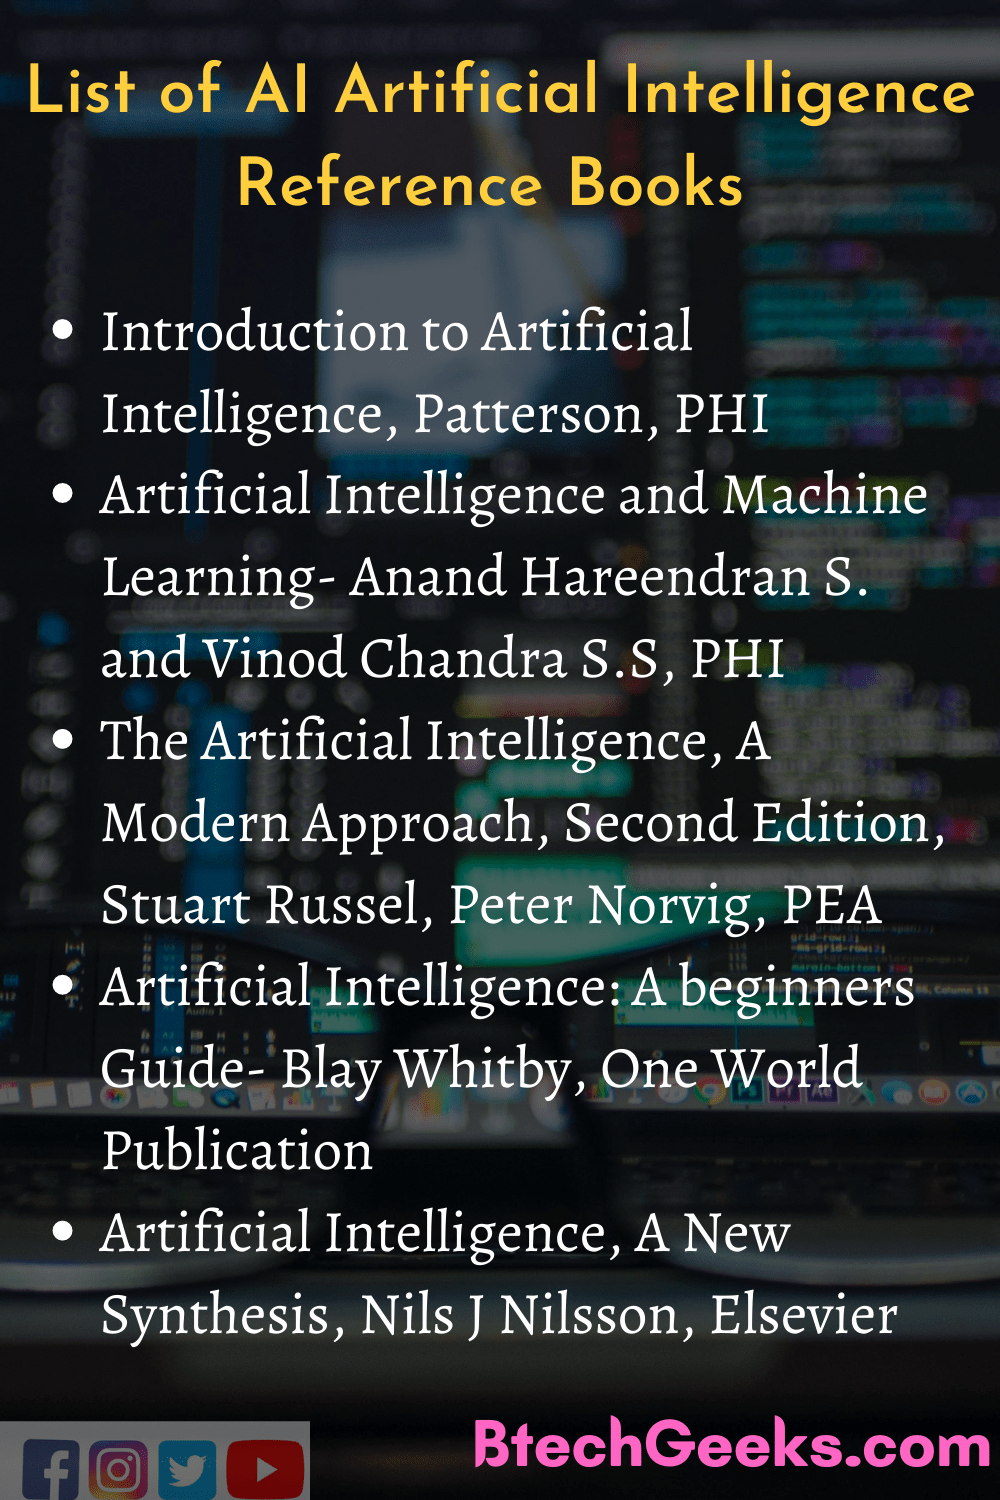 List of AI Artificial Intelligence Reference Books